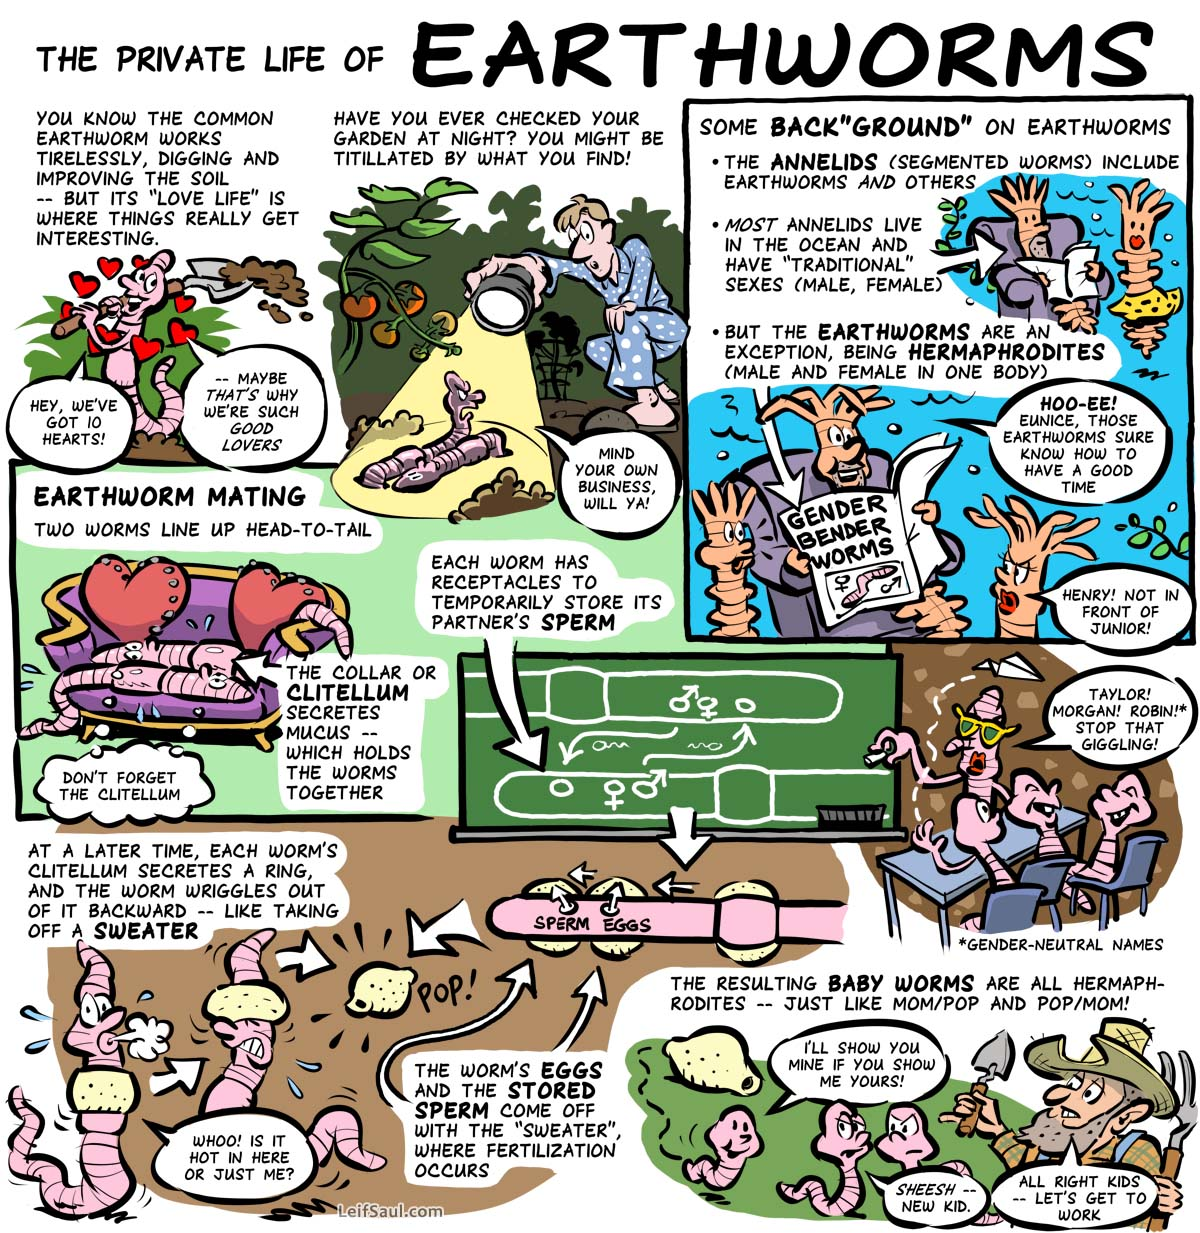 The private life of earthworms